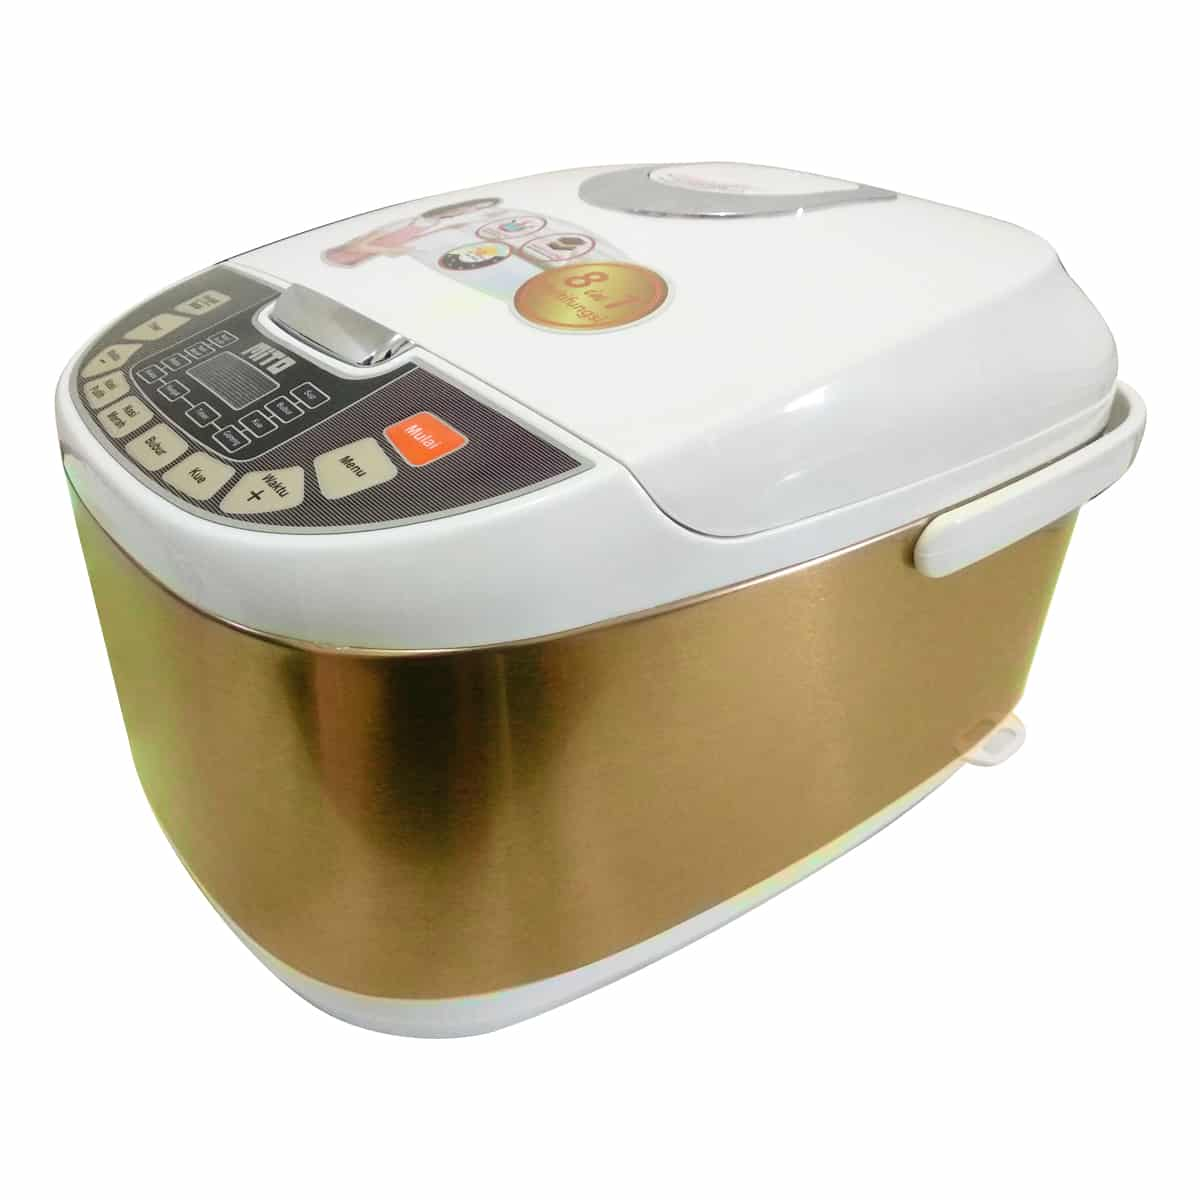 Mito-R5-Digital-Rice-Cooker-8-in-1